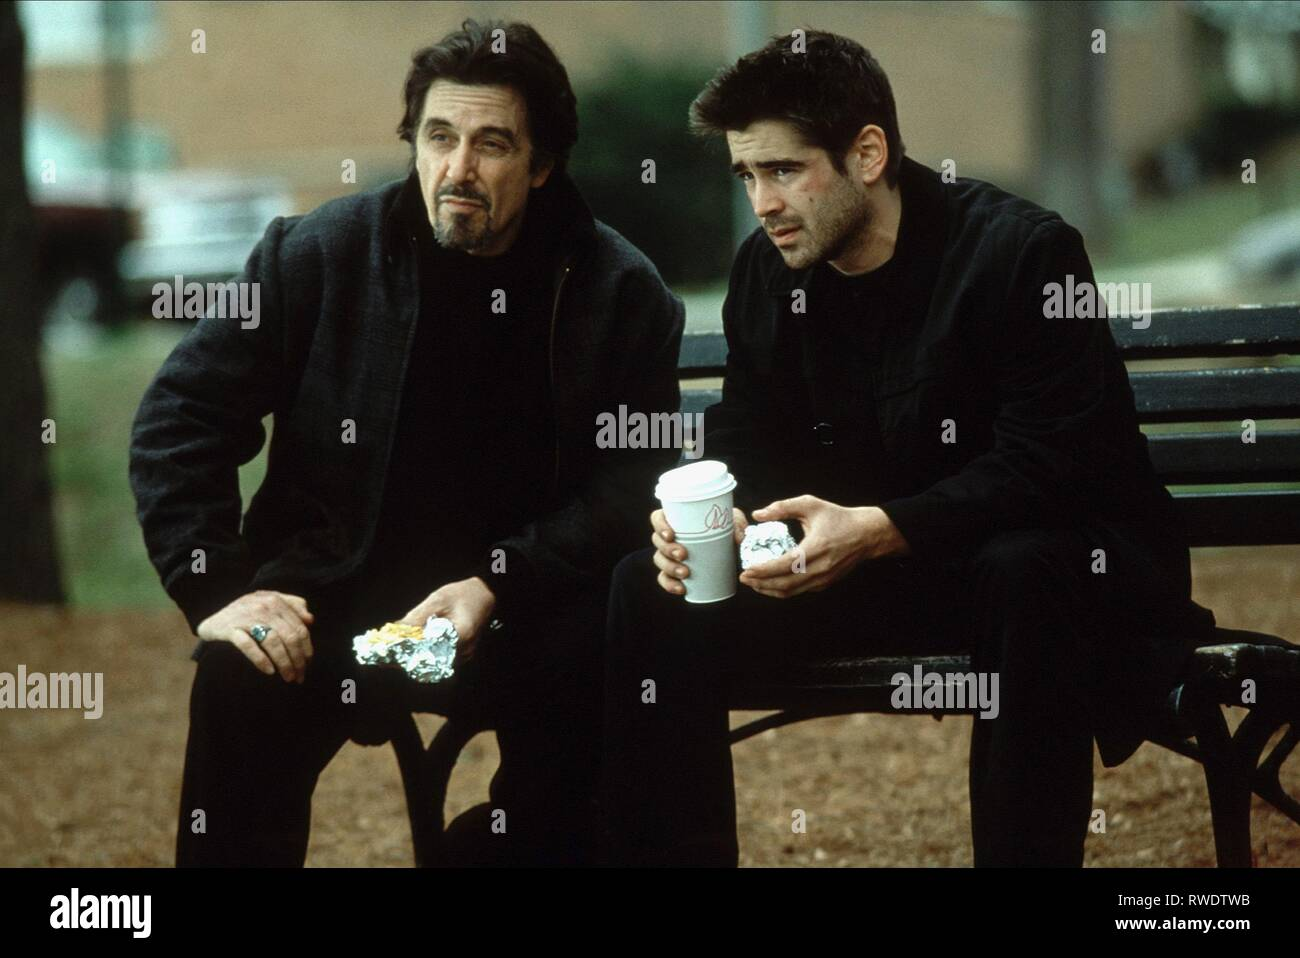 PACINO,FARRELL, THE RECRUIT, 2003 - Stock Image